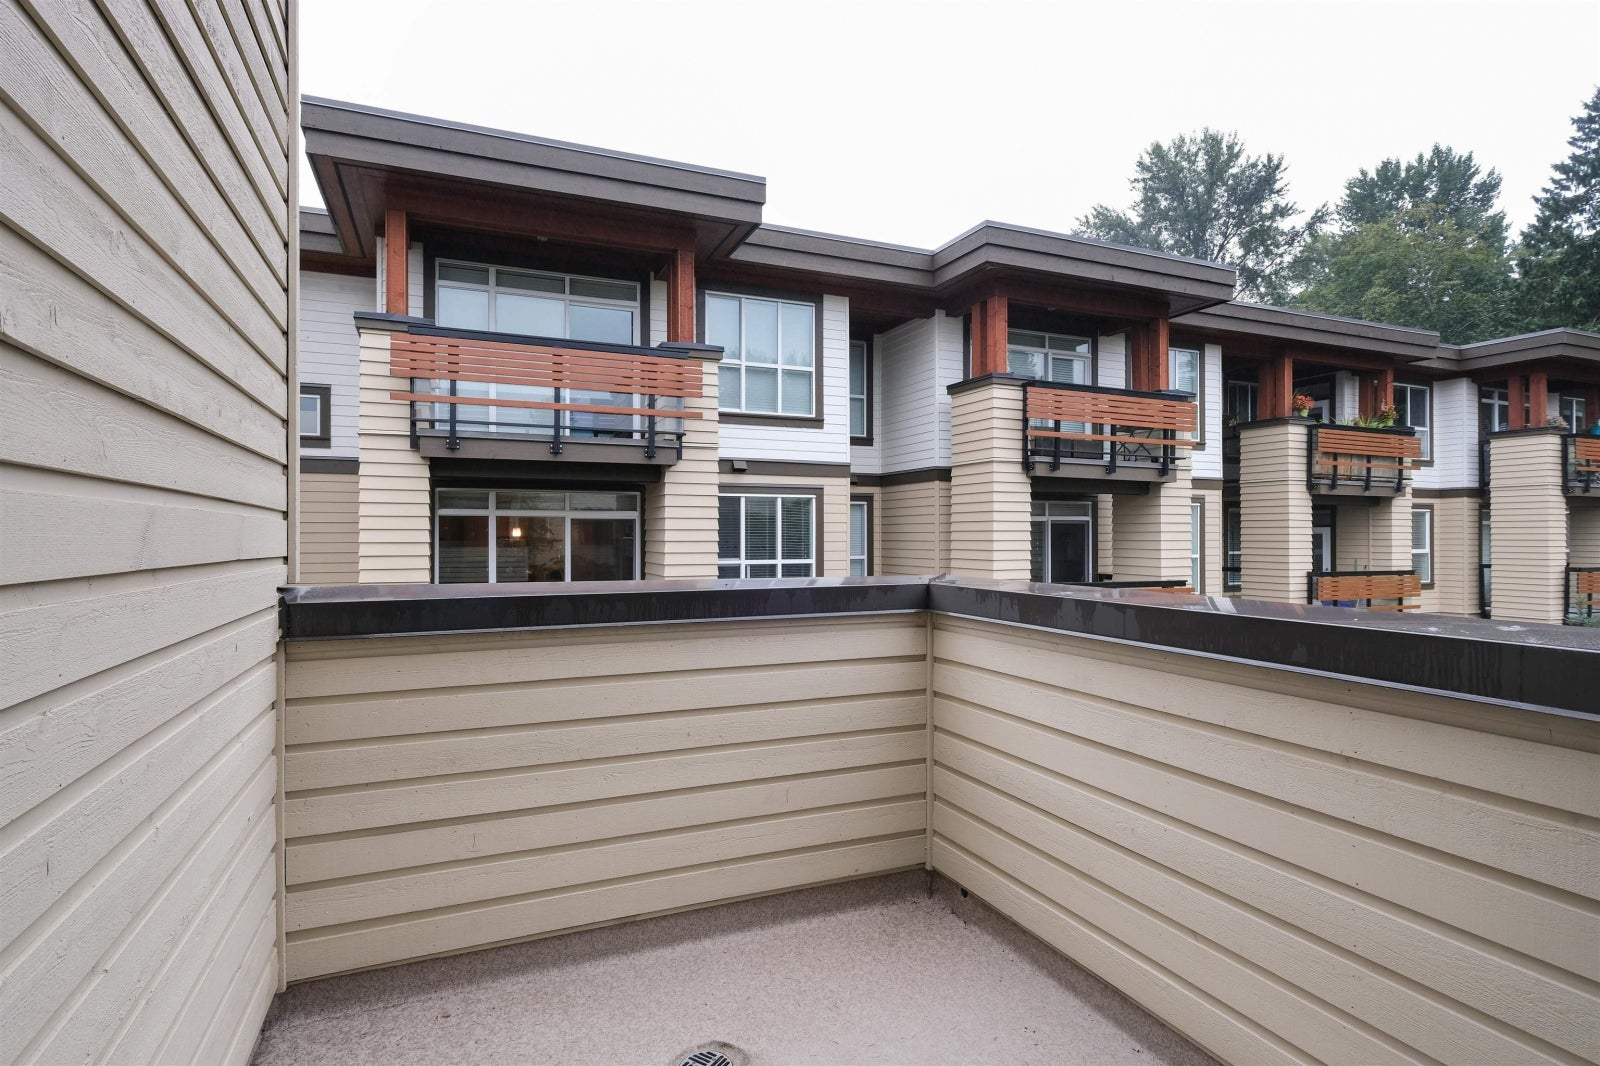 304 3275 MOUNTAIN HIGHWAY - Lynn Valley Apartment/Condo for sale, 2 Bedrooms (R2618420) #13